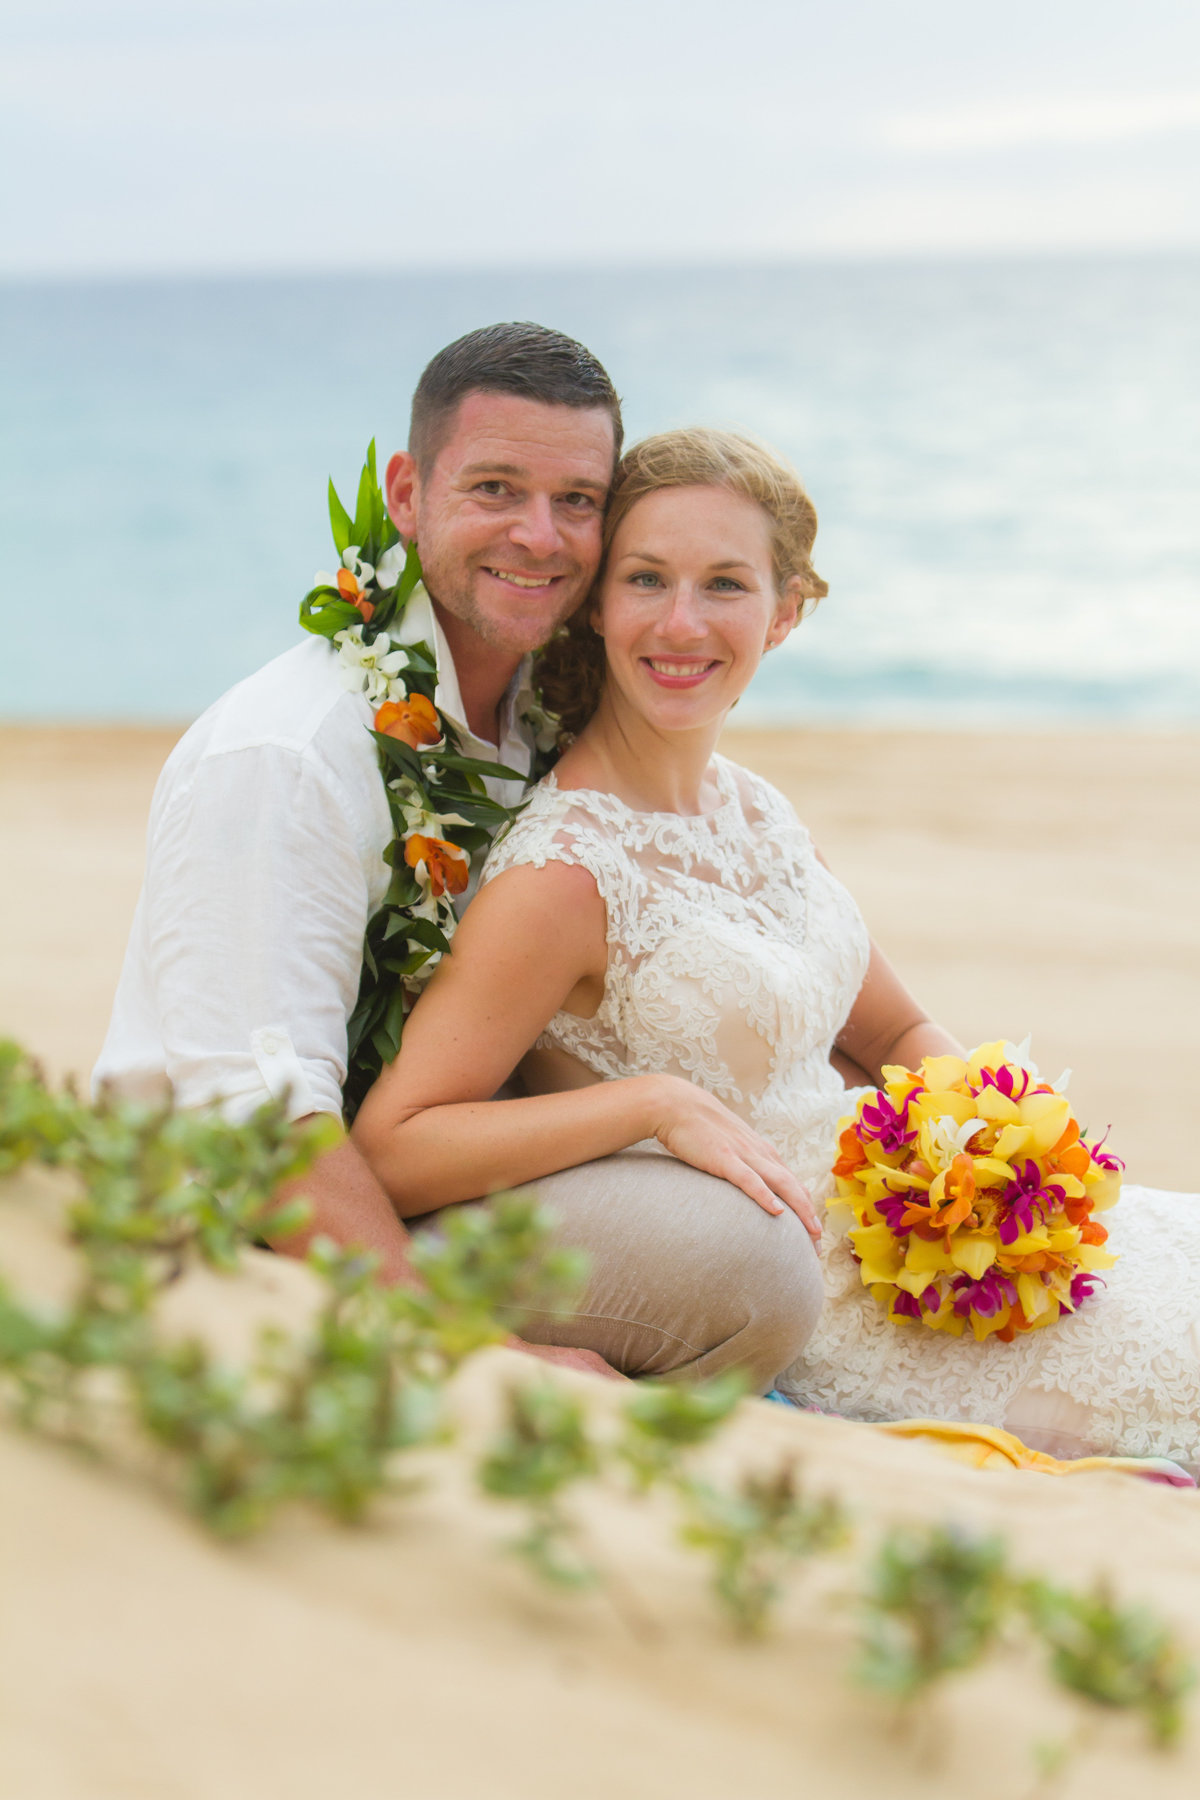 Kauai beach wedding portraits.